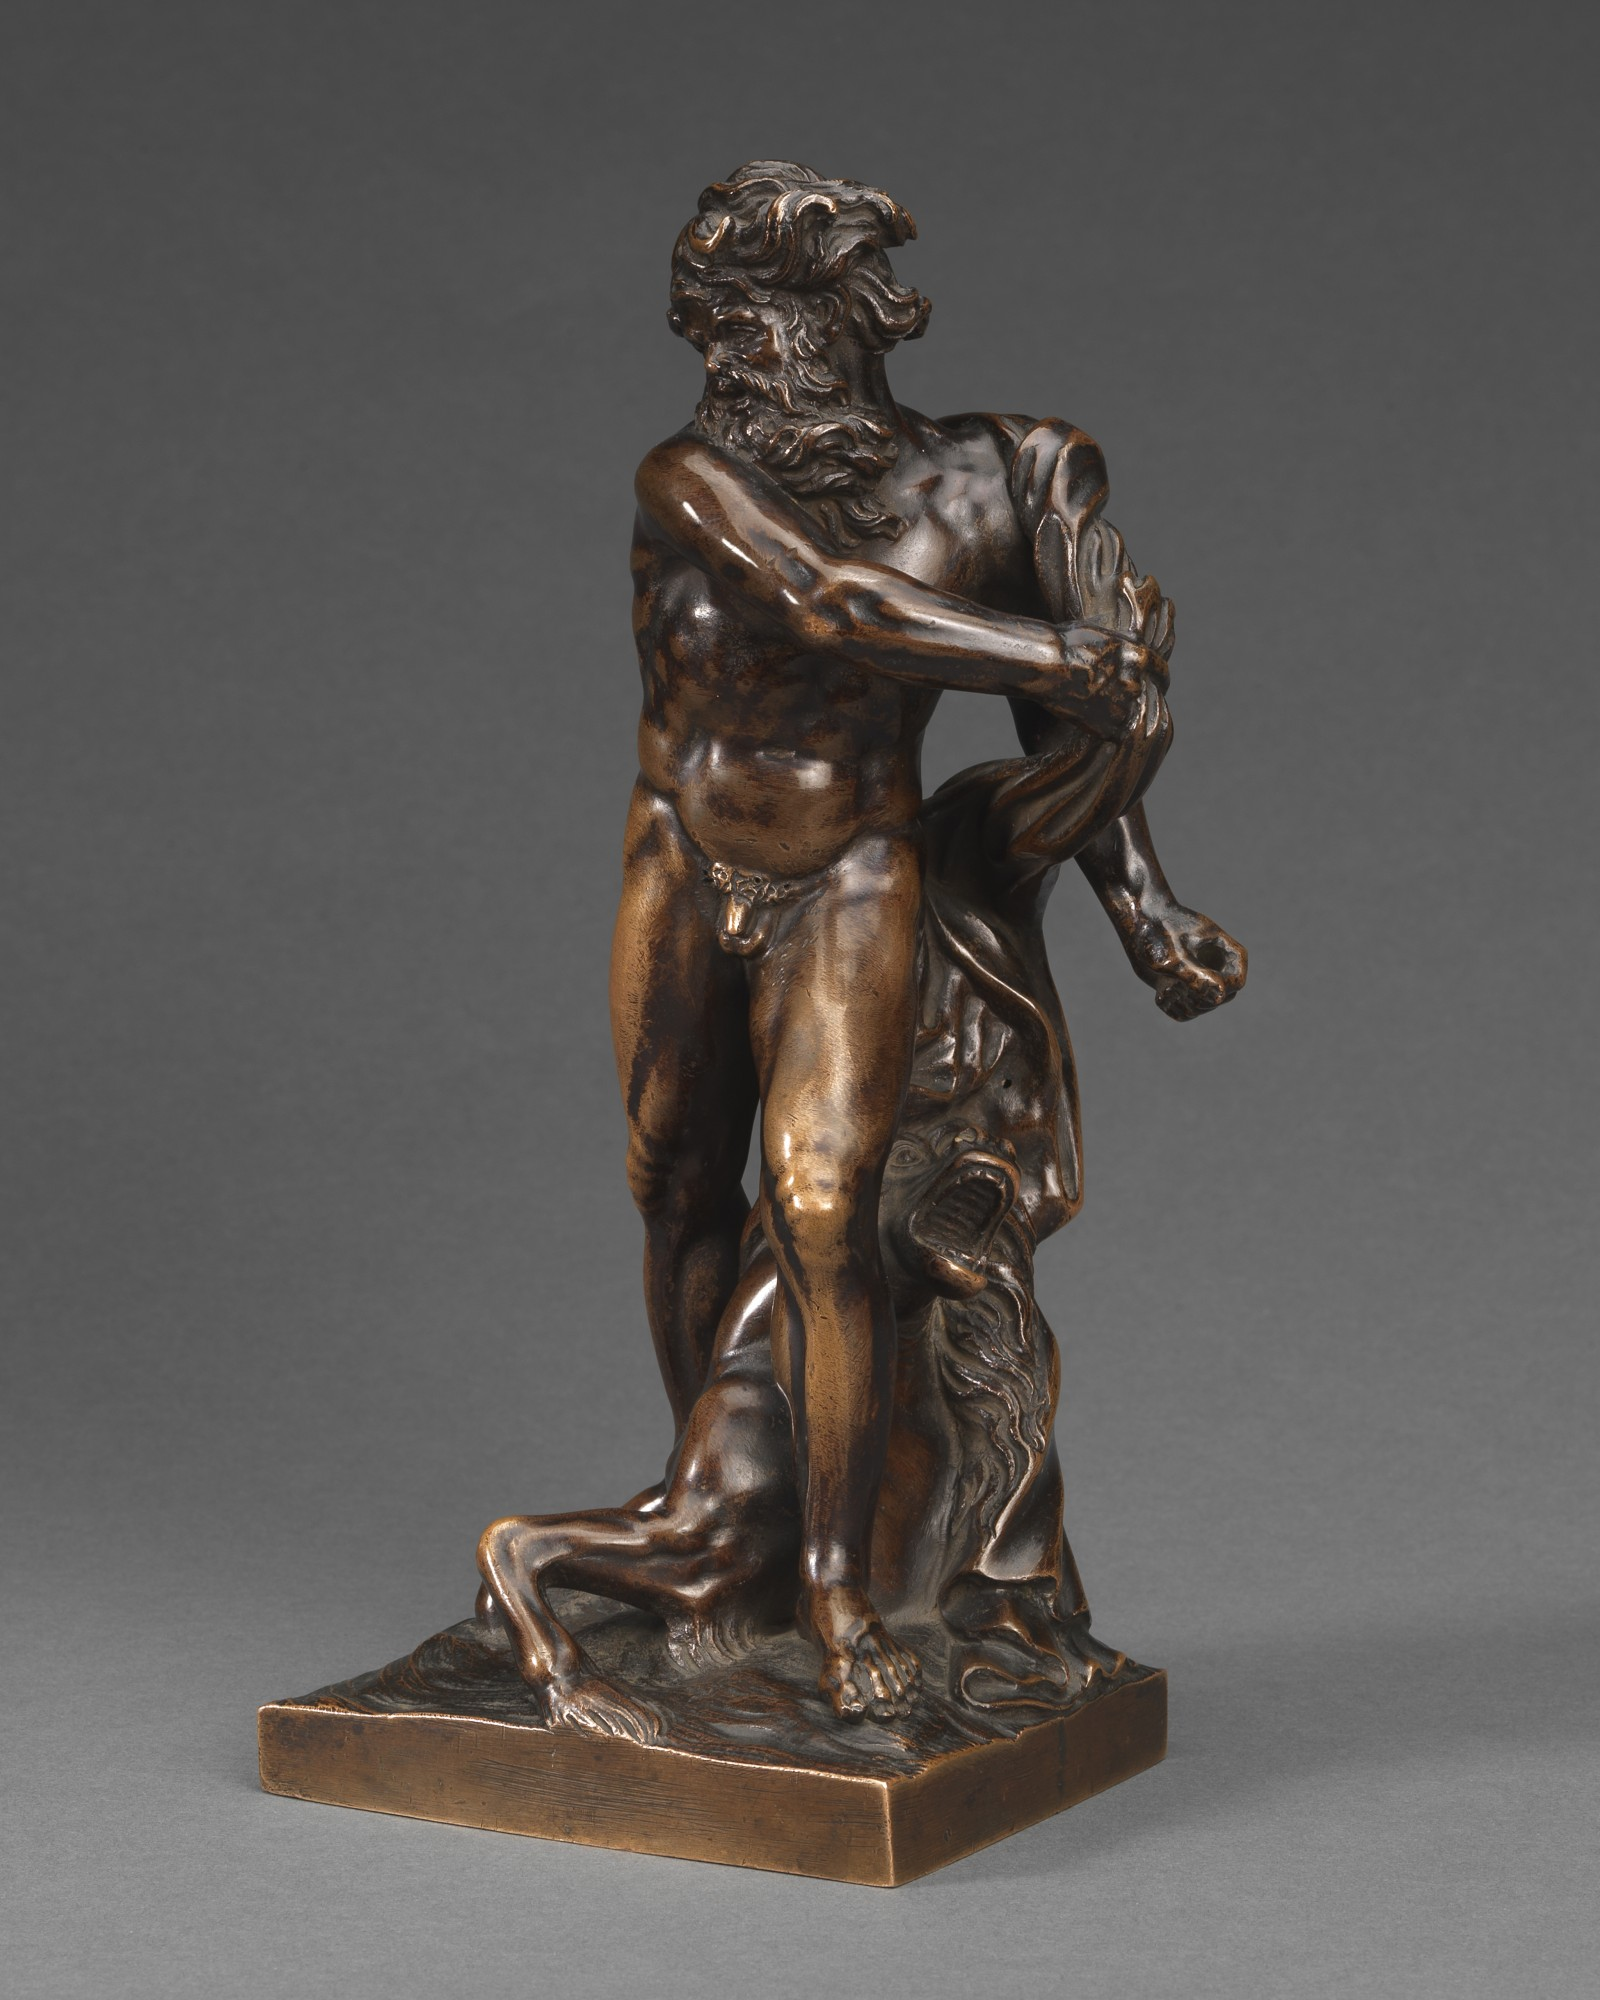 'Agitated' Neptune, Workshop of Michel Anguier(Eu c. 1612-1614 – 1686 Paris),